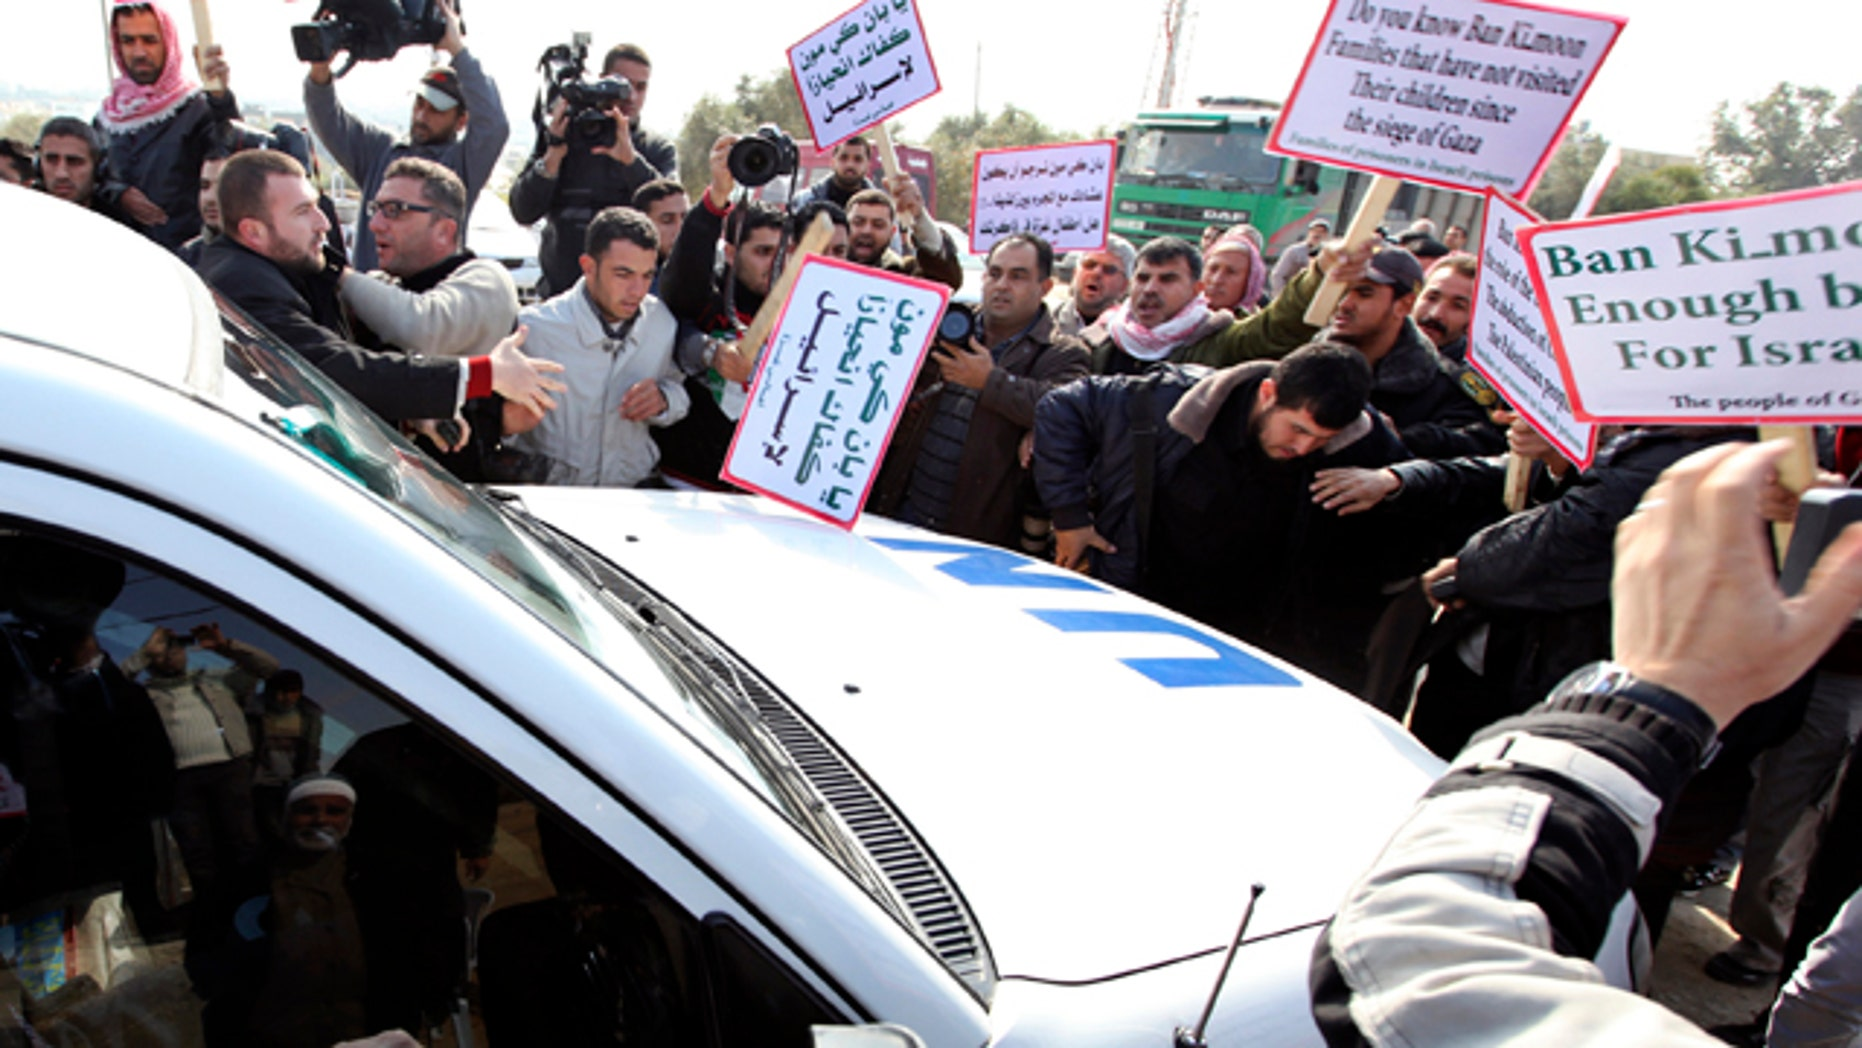 Feb. 2: Palestinian protesters surround a vehicle in the convoy of U.N. Secretary-General Ban Ki-moon as it arrives at Erez border crossing between Israel and Gaza.